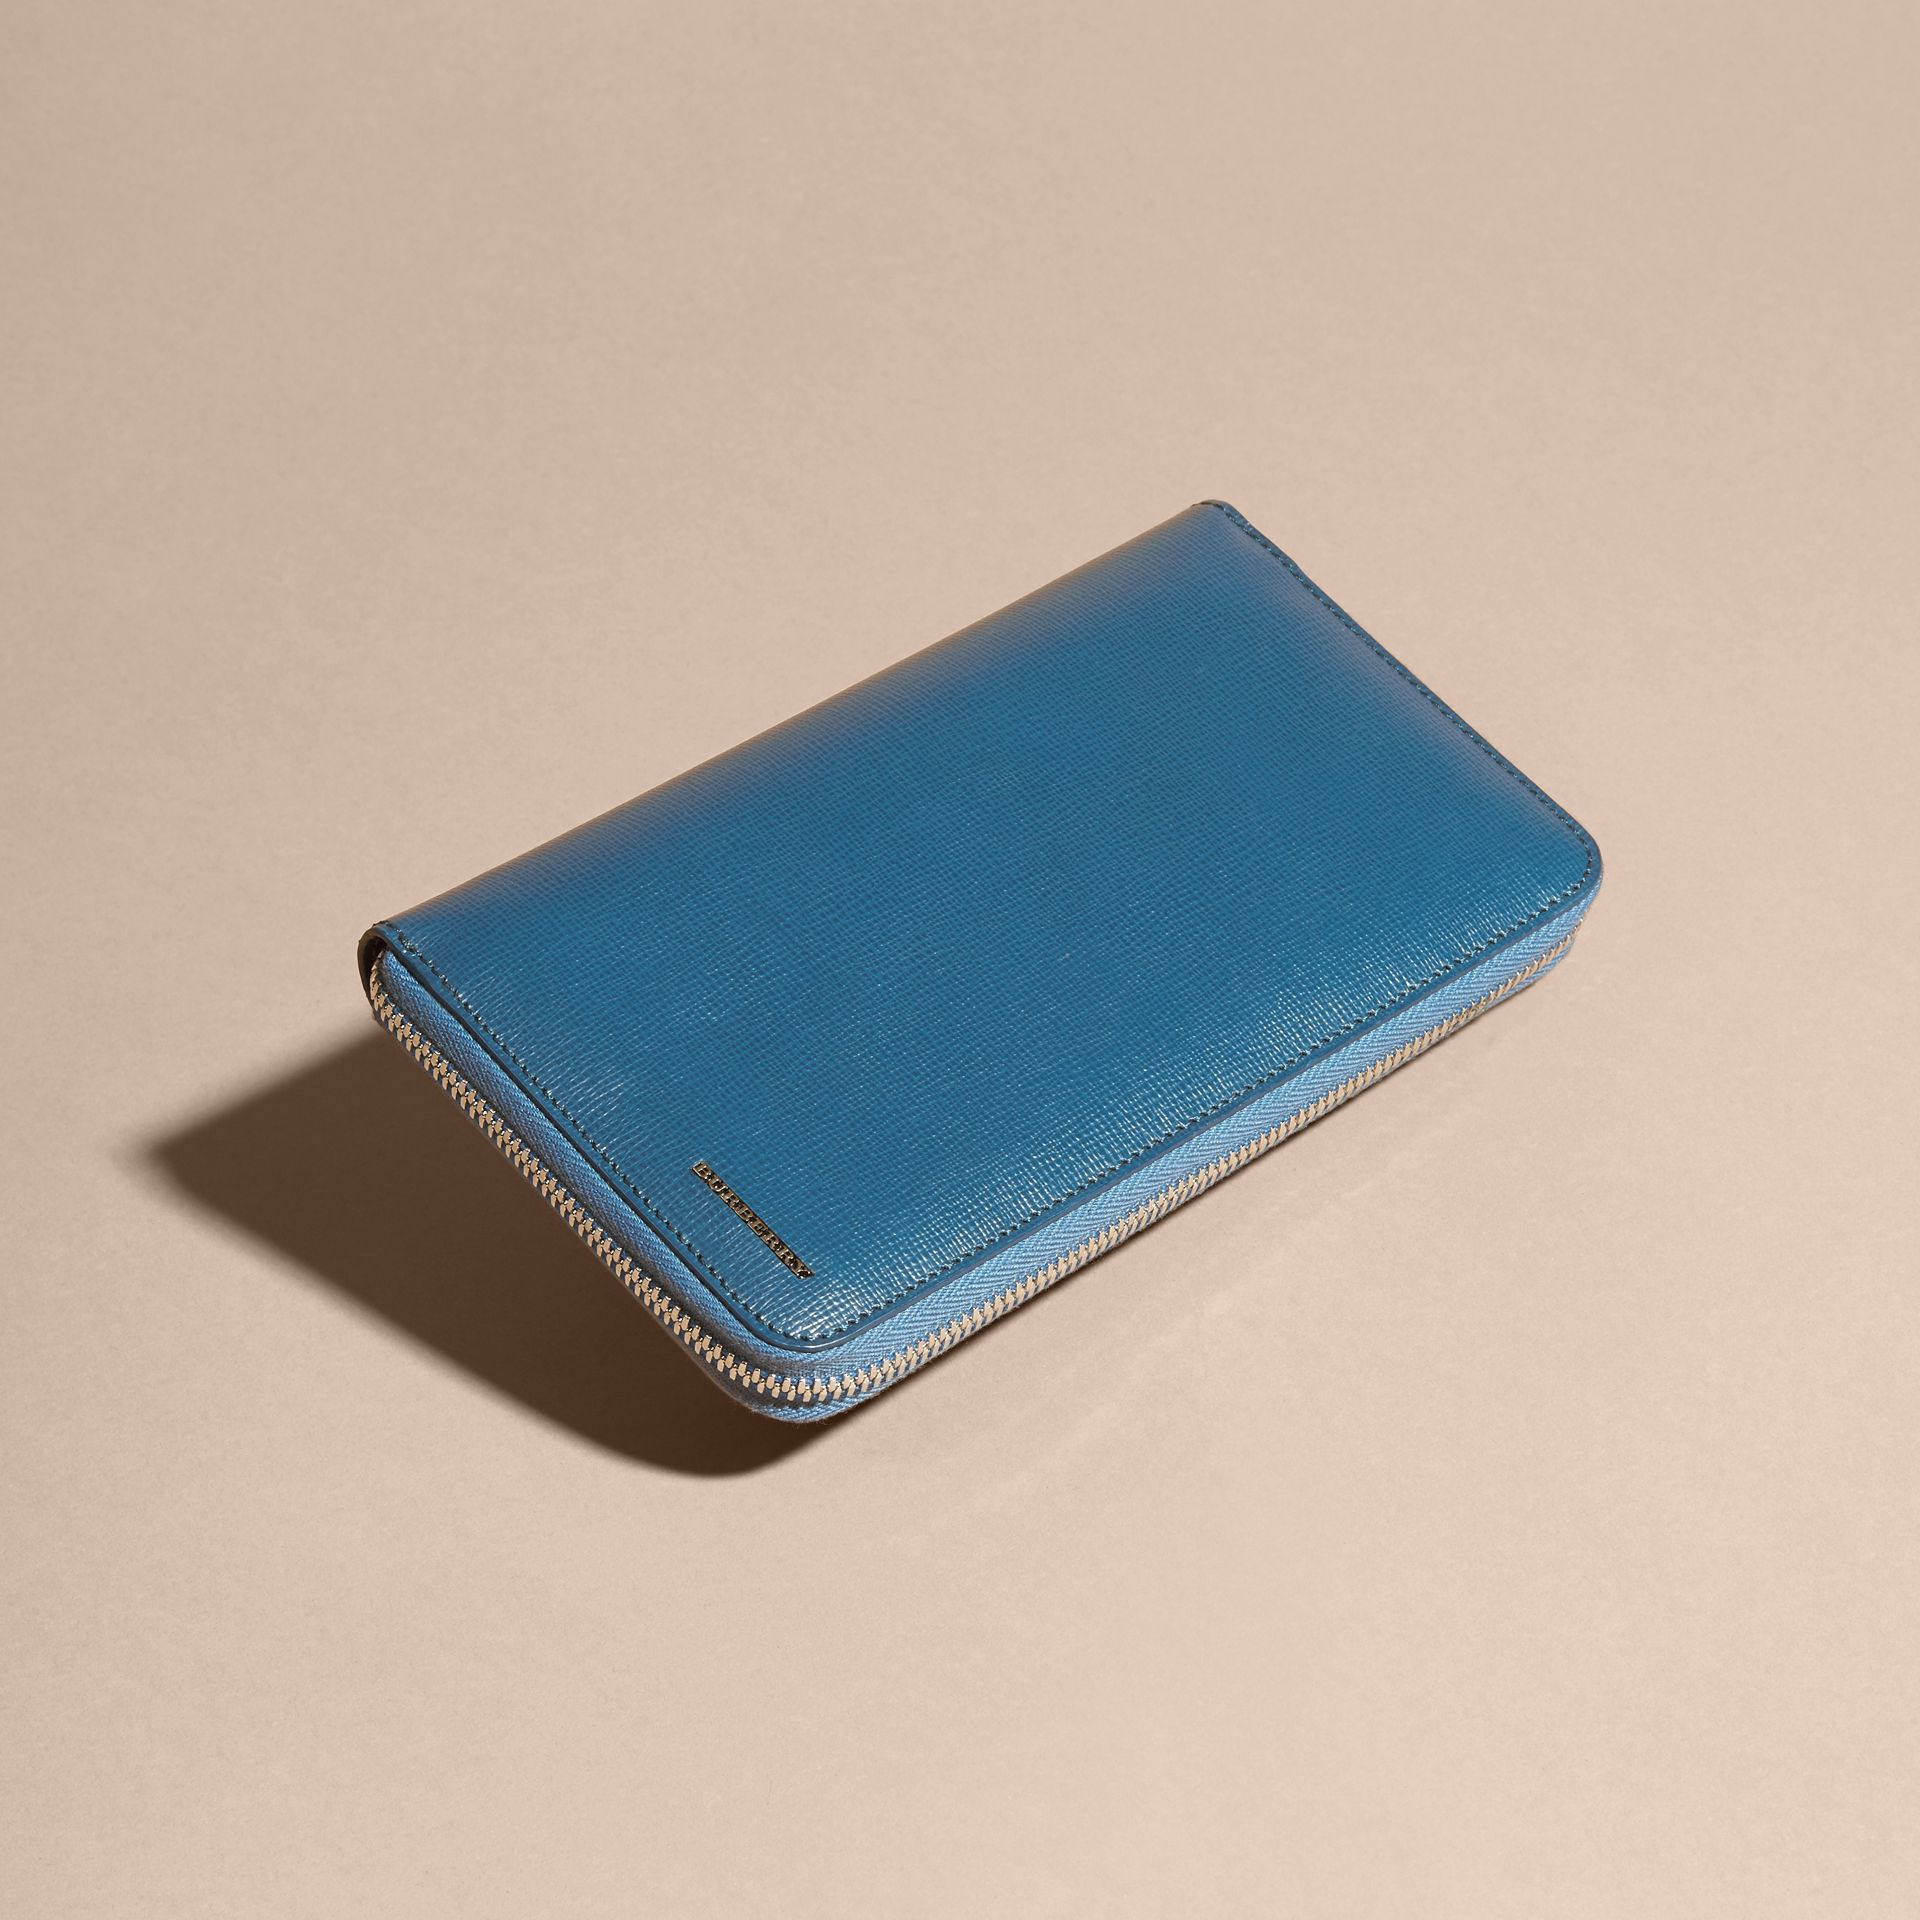 Mineral blue London Leather Ziparound Wallet Mineral Blue - gallery image 4